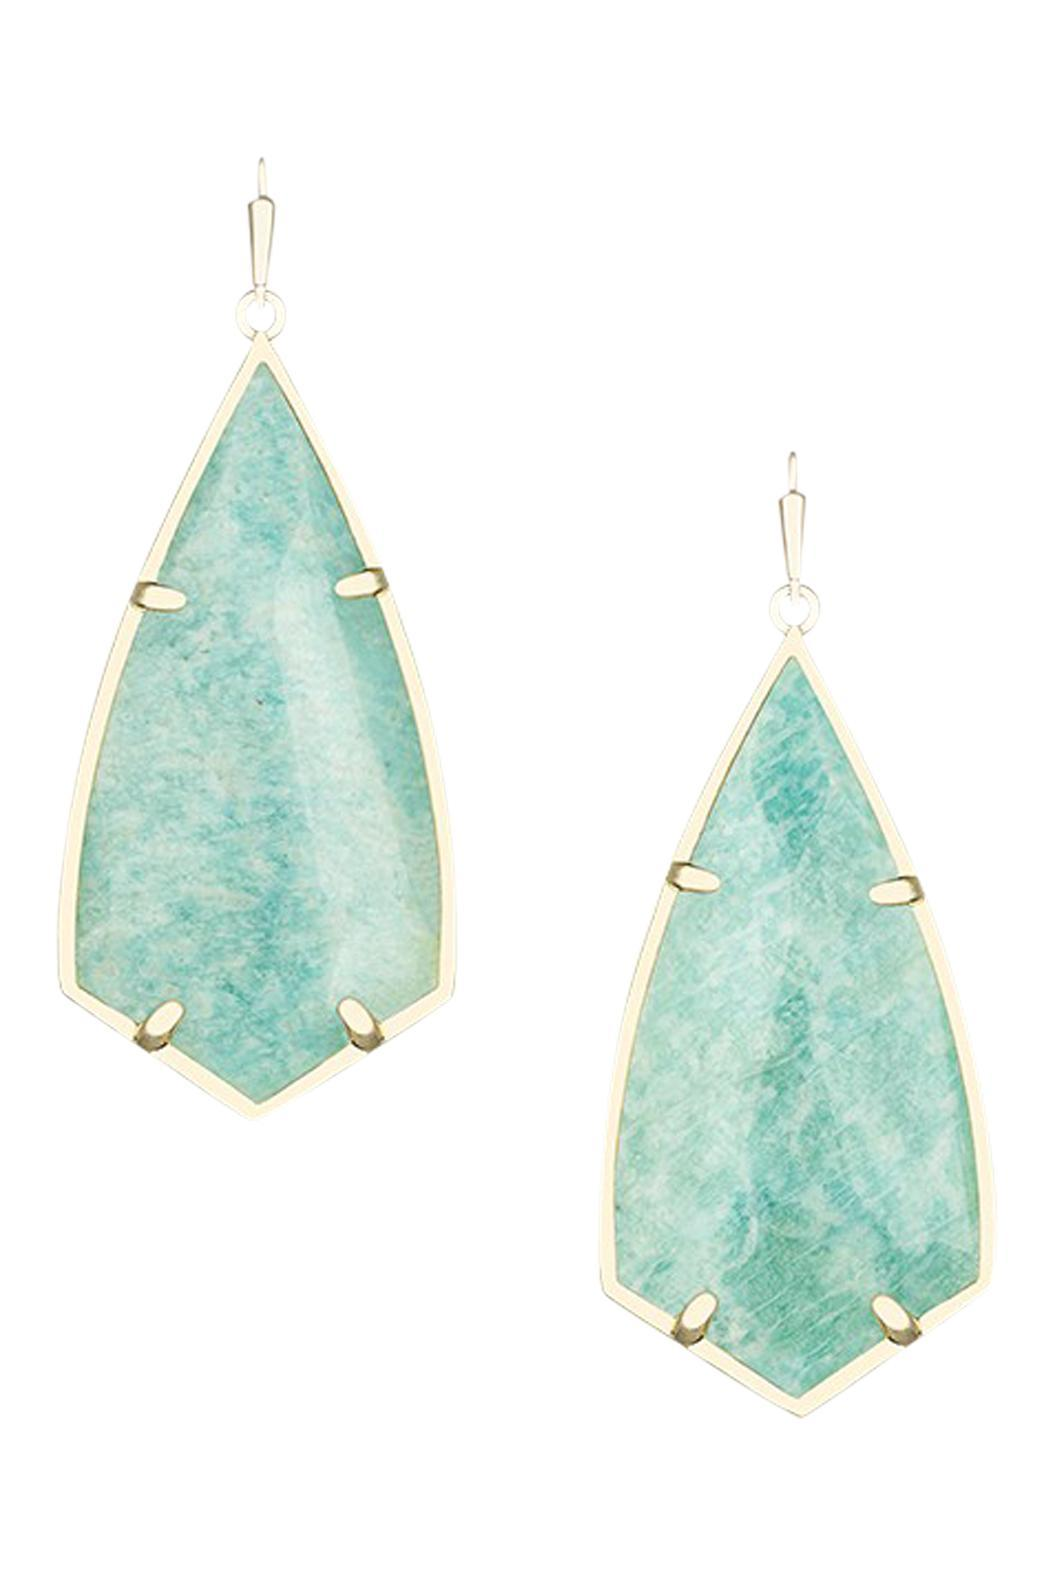 Kendra Scott Turquoise Amazonite Earrings from Arkansas by